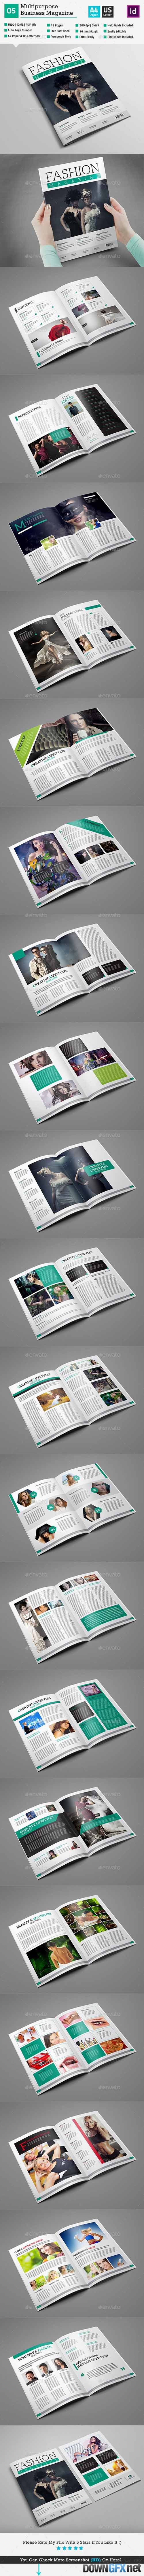 Fashion Magazine Template - InDesign 42 Page_V5 10954902